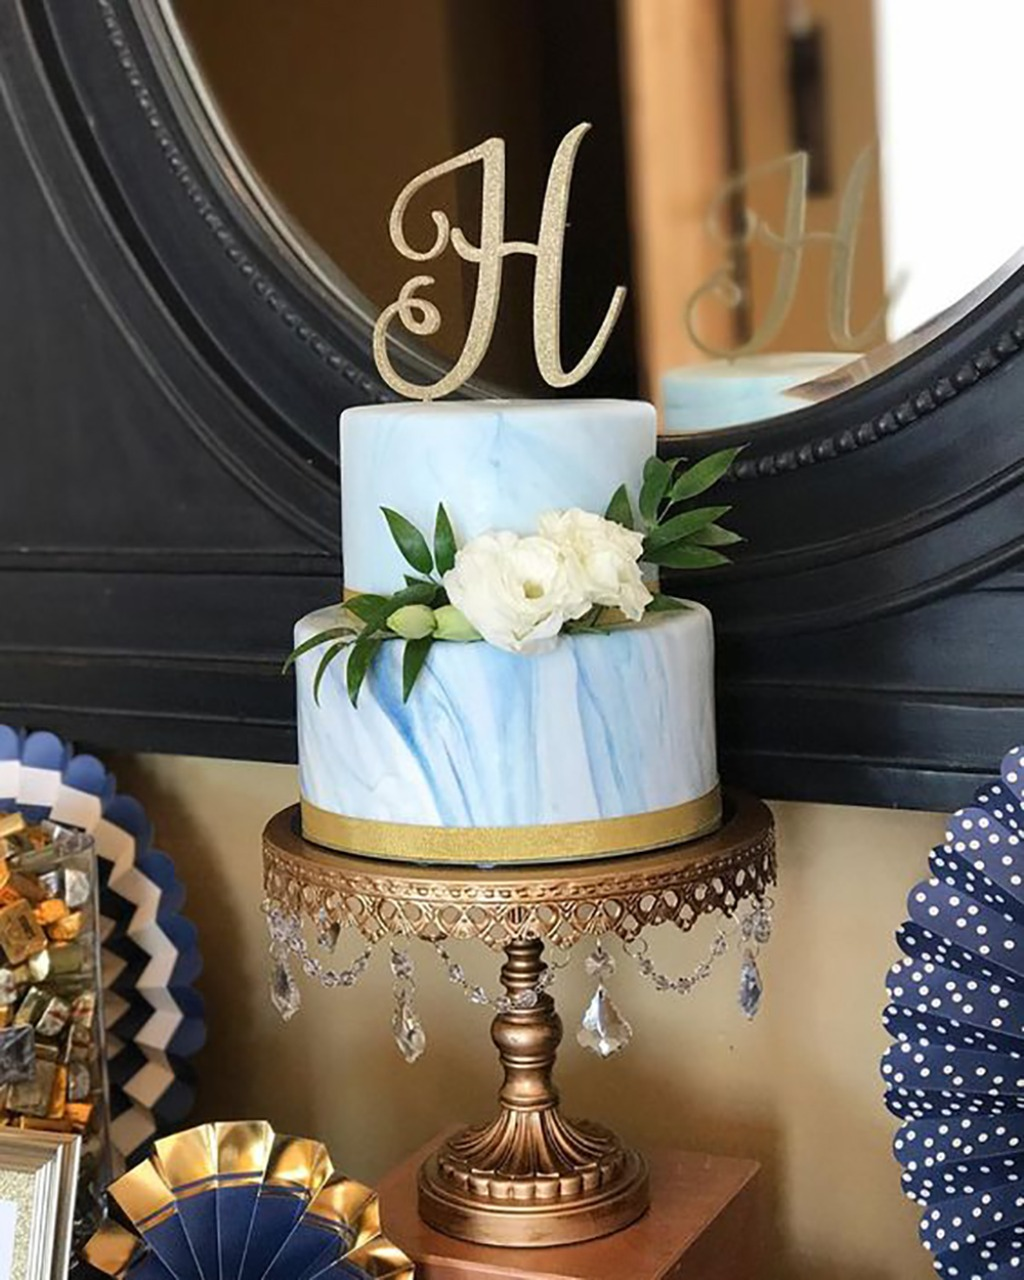 Something Blue! Modern Marble Wedding Cake on Antique Gold Chandelier Cake Stand created by Opulent Treasures {cake & photo: @couturecakery